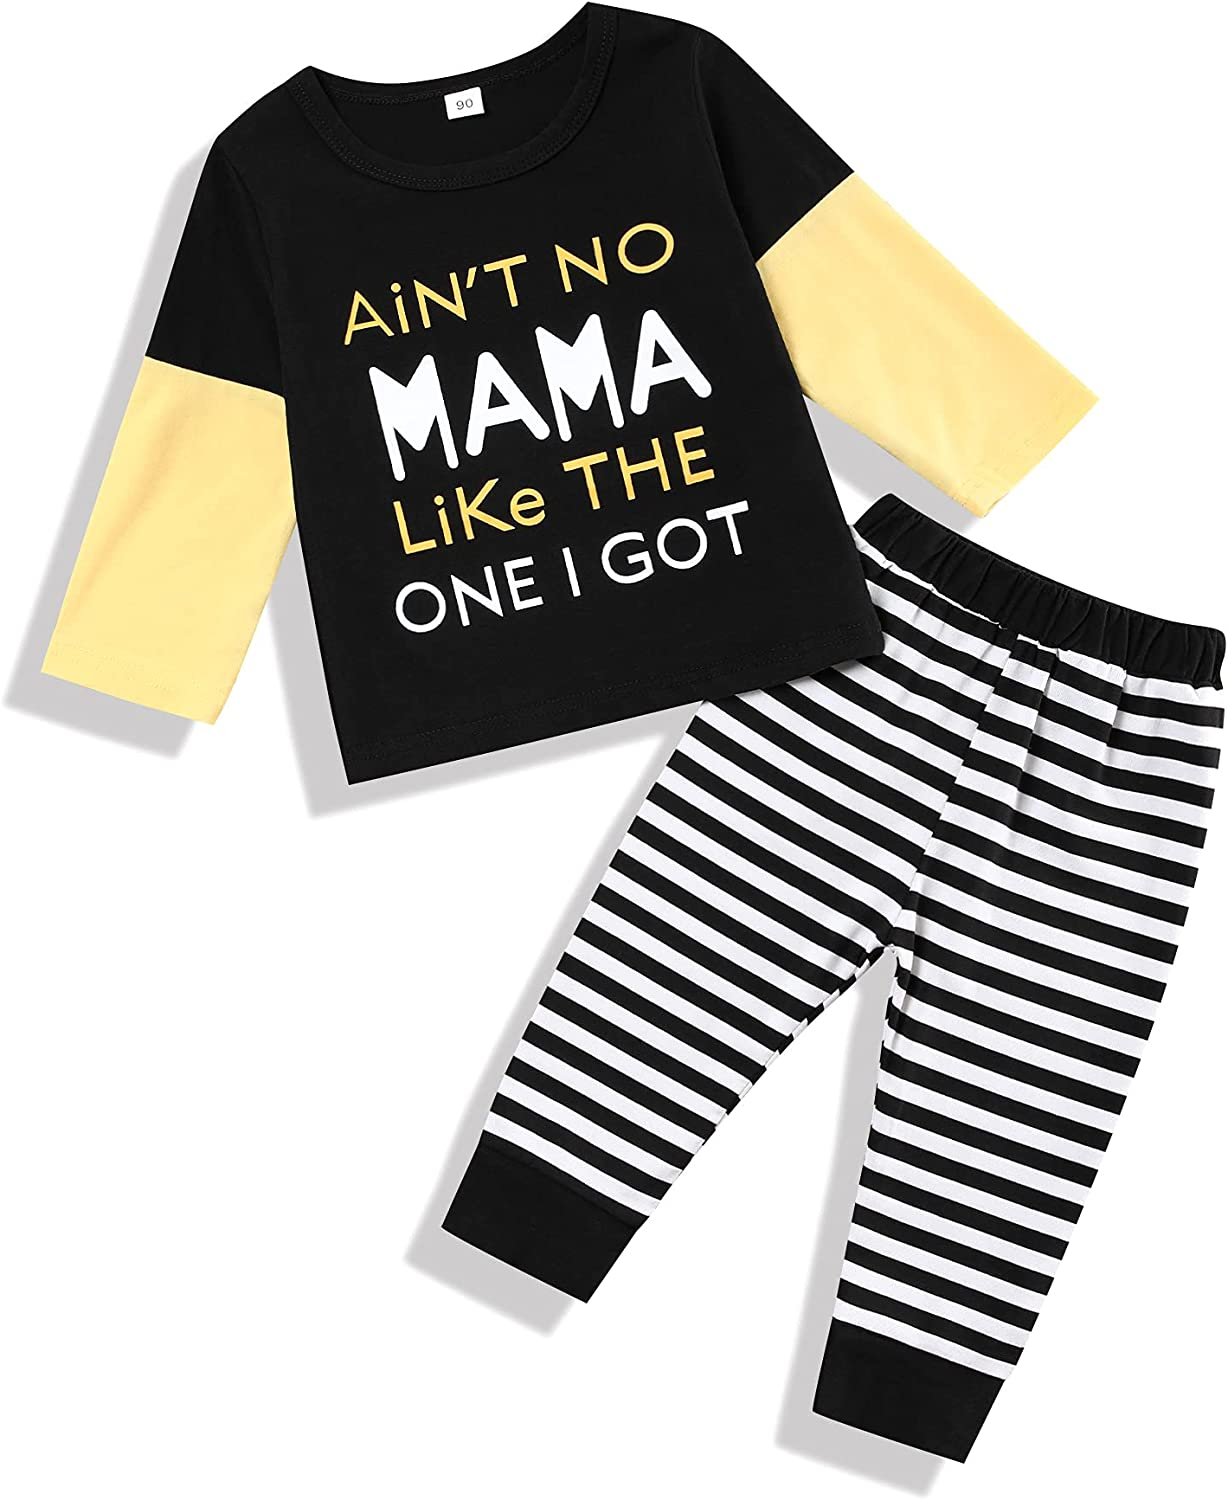 Gavol Toddler Baby Boy Clothes Ain'T NO MAMA LIKE THE ONE I GOT Letter Print Top and Camouflage Pants 2Pcs Outfits Set